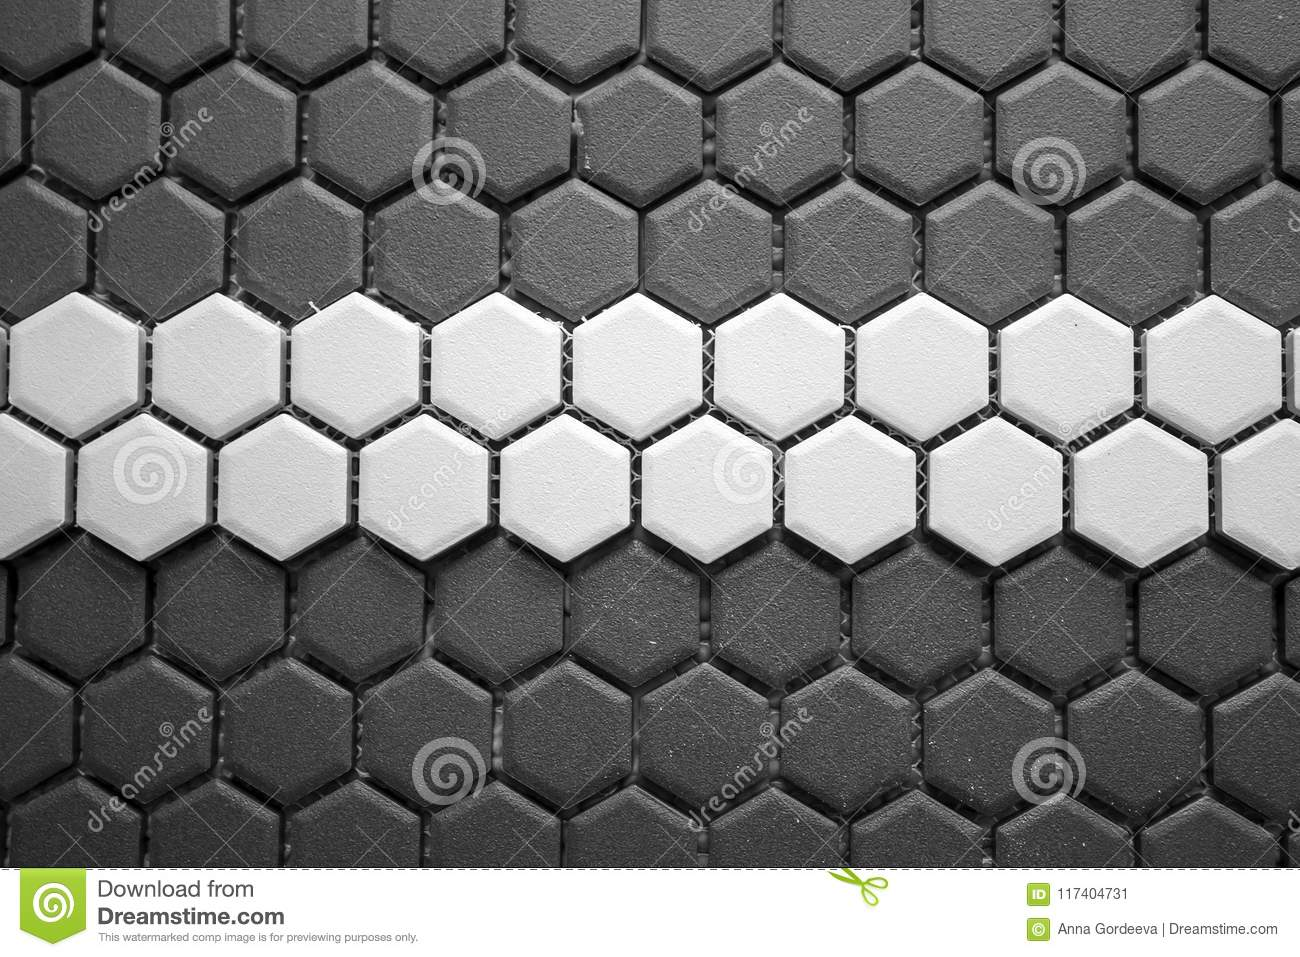 Ceramic Tiles Mosaic Made Of Gray Rhombuses With A White Stripe In